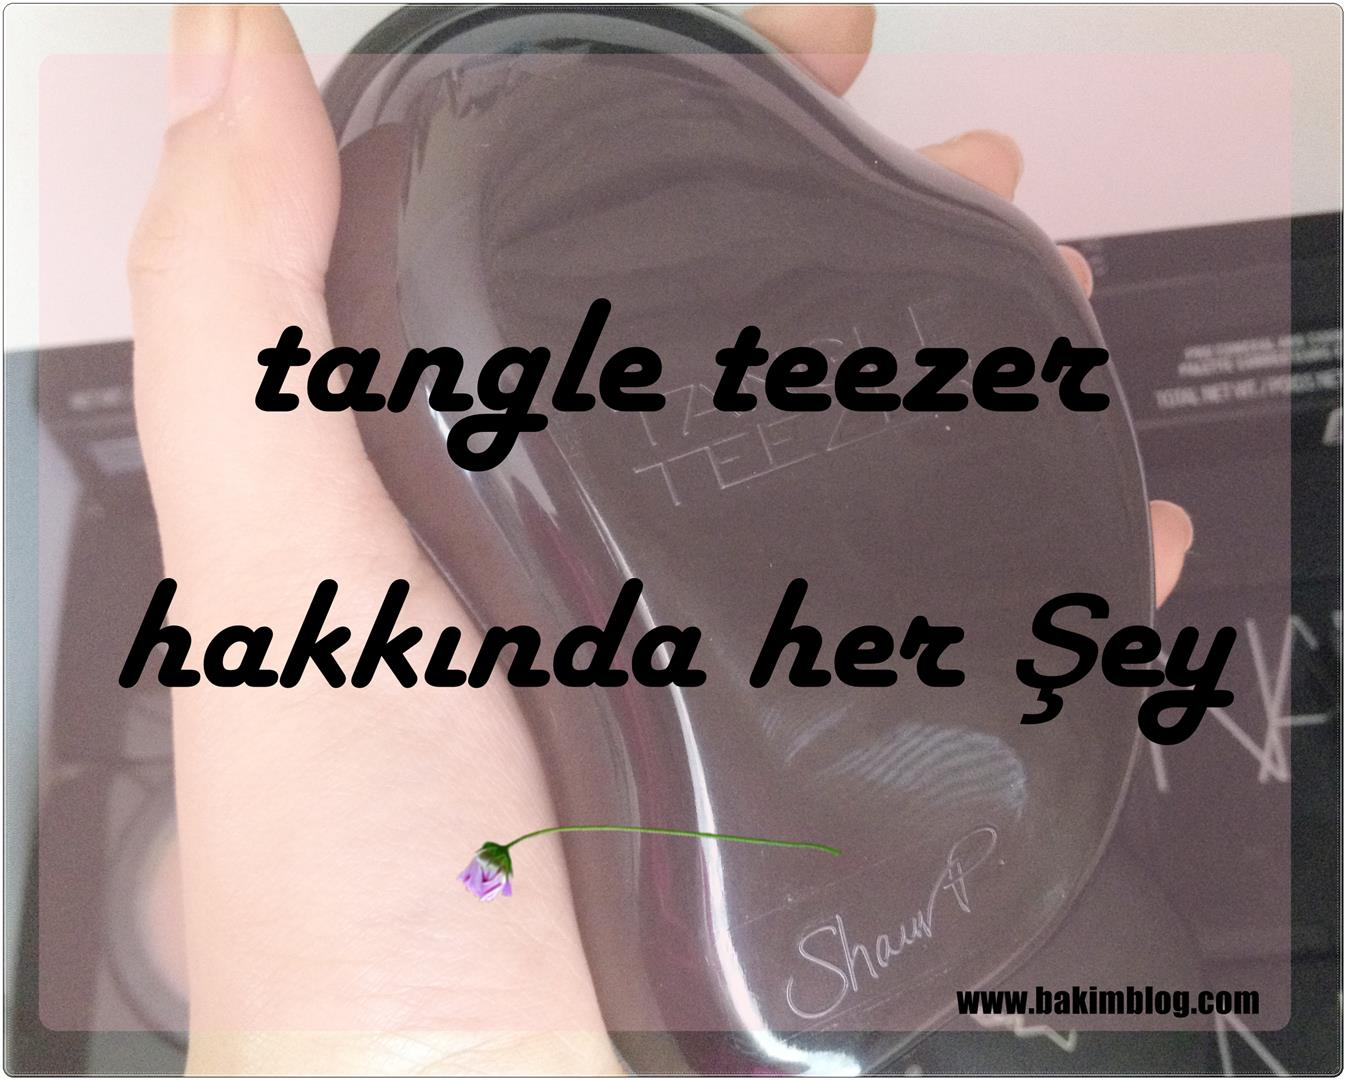 tangle teezer kullananlar